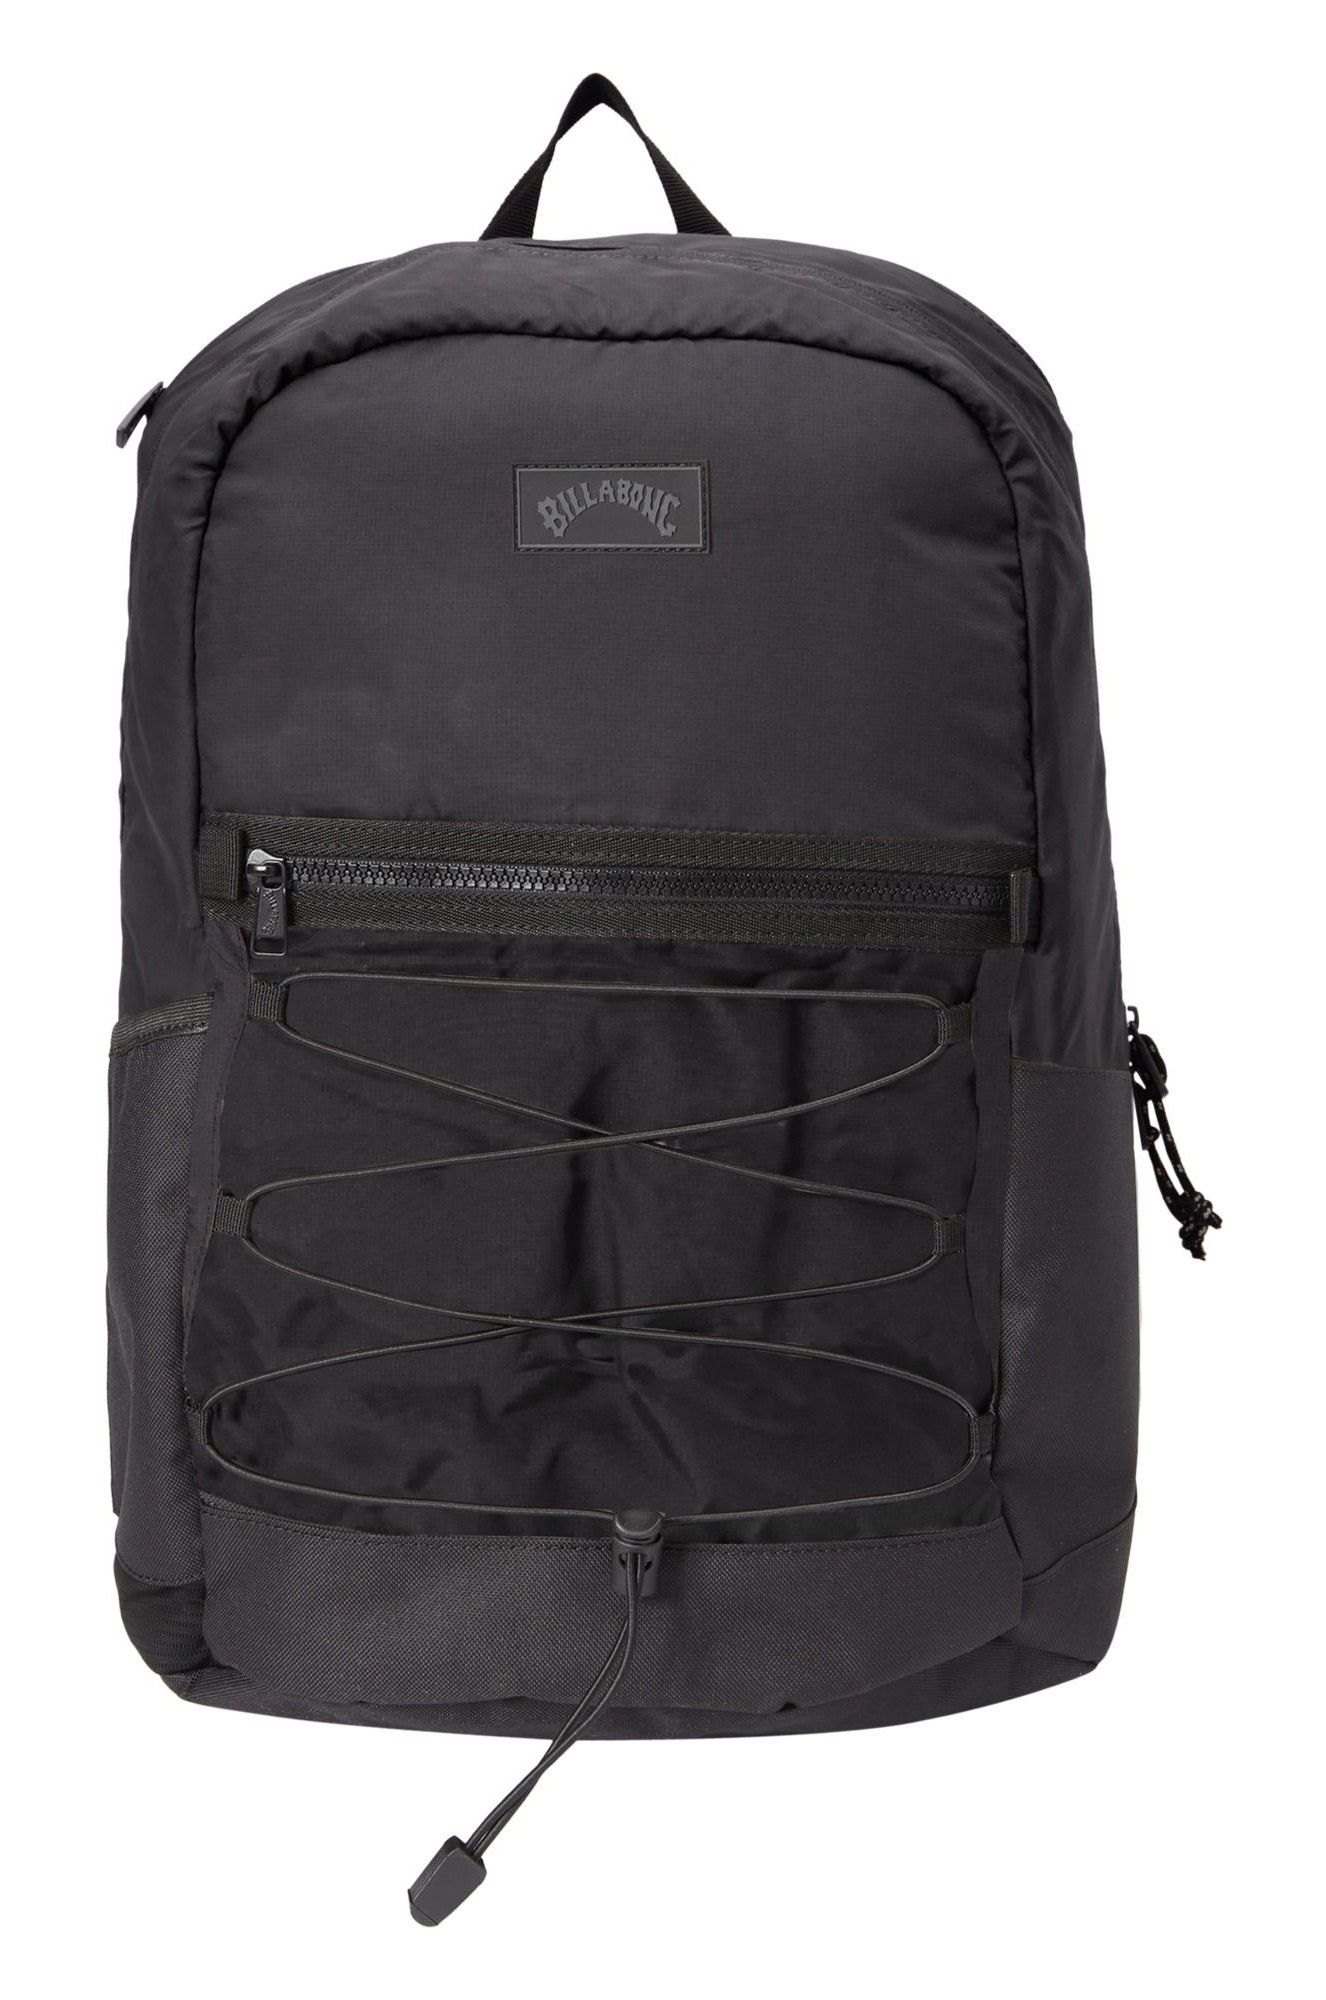 Billabong Backpack AXIS DAY PACK ADVENTURE DIVISION Stealth